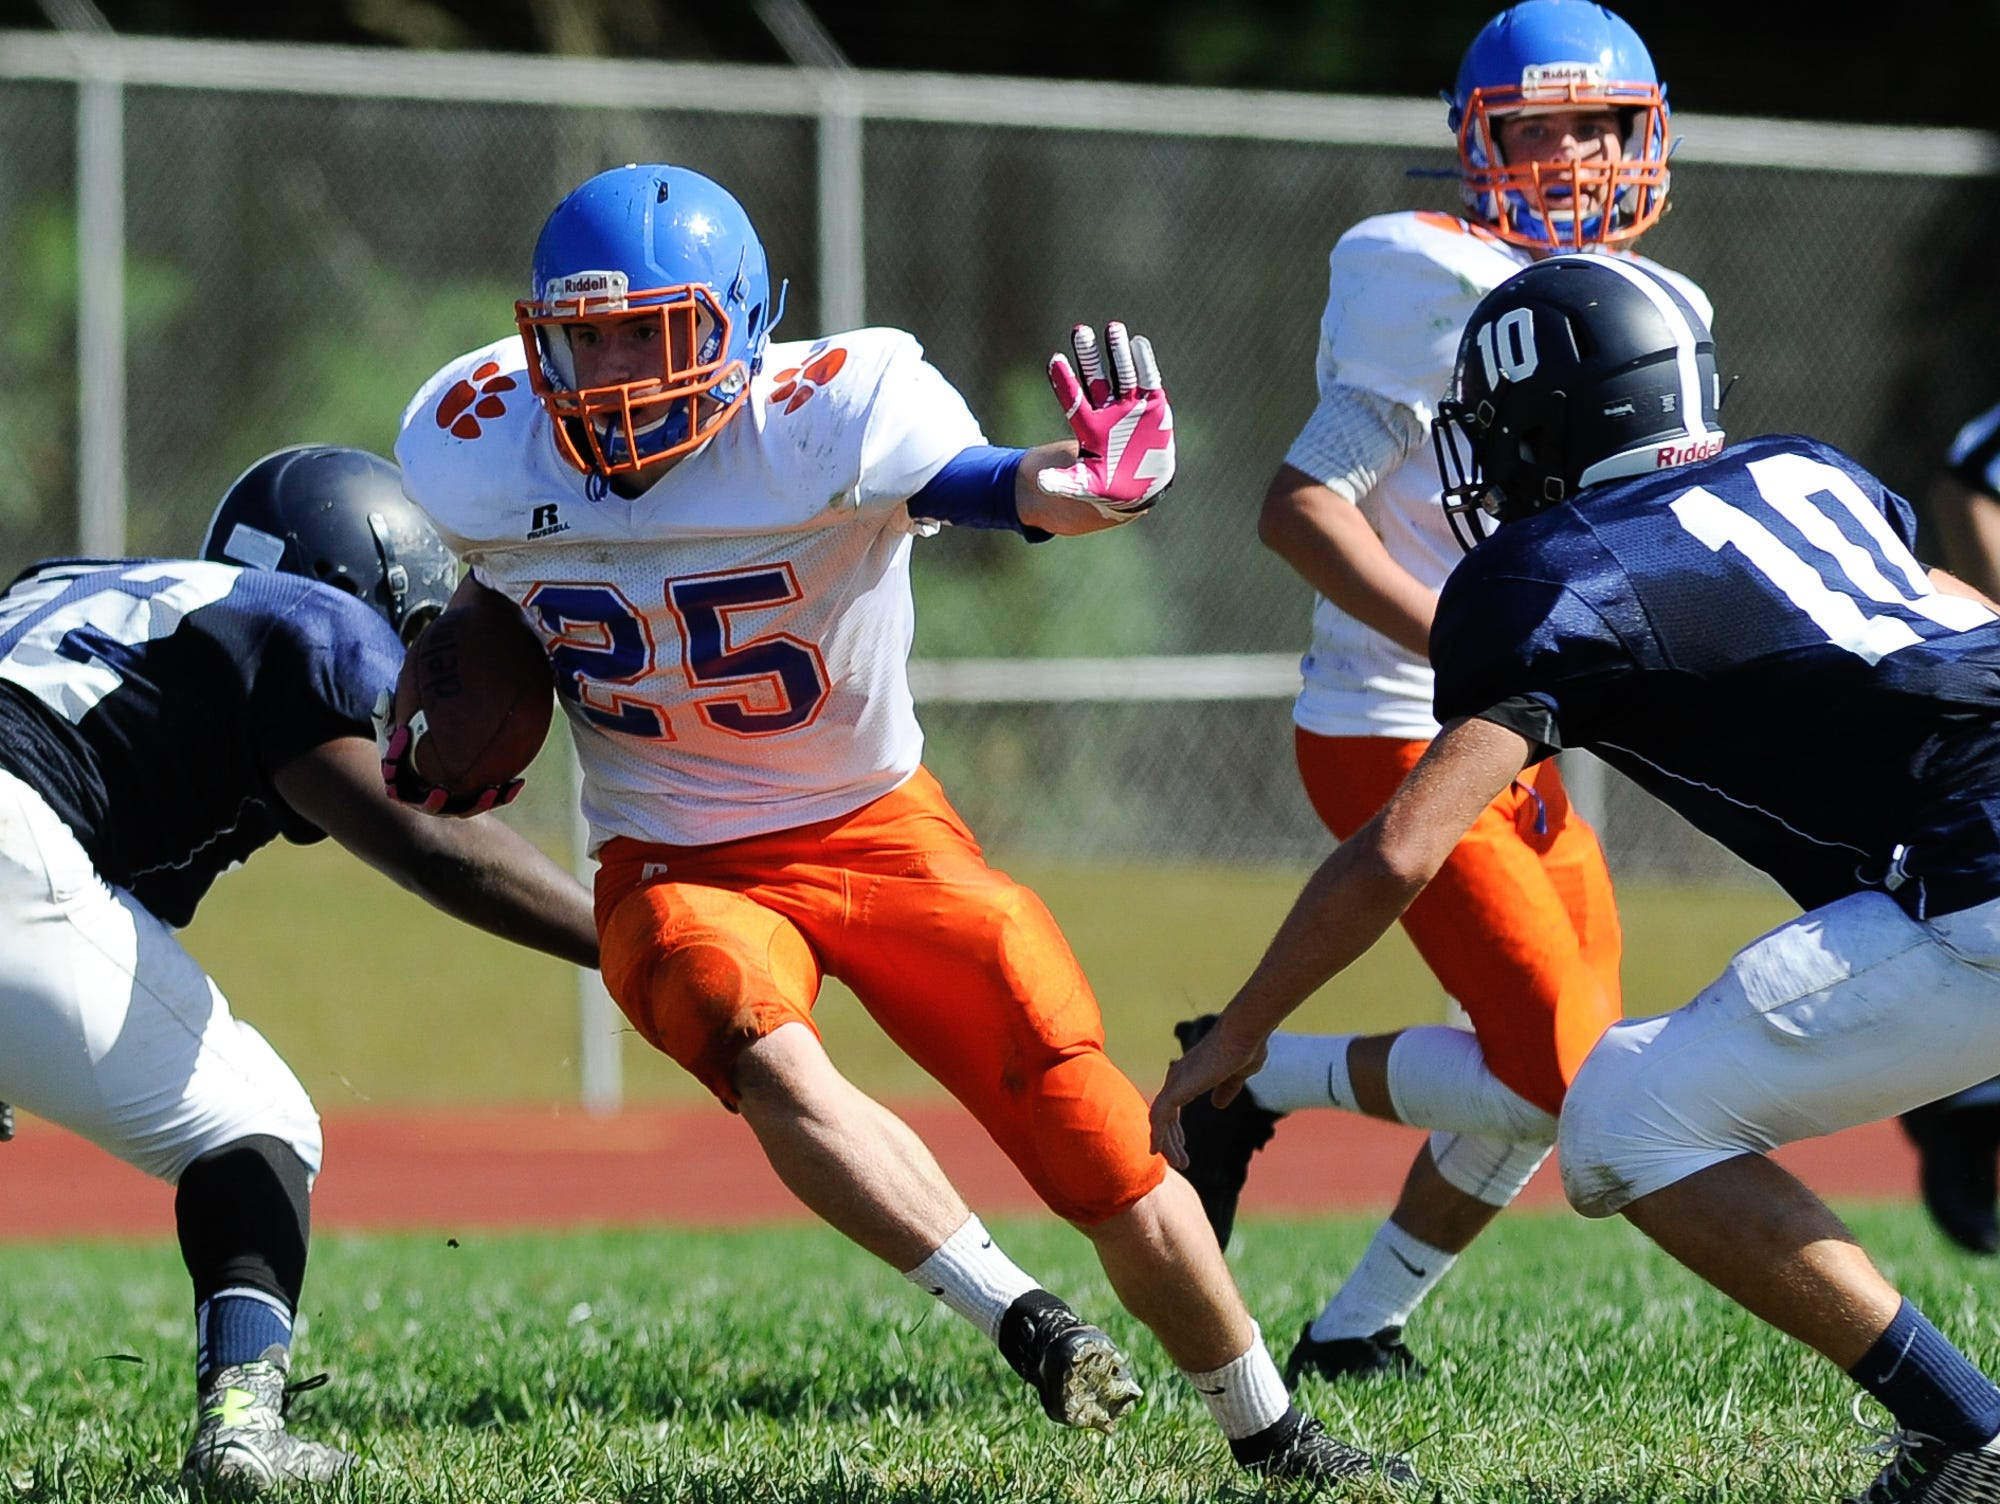 Delmar's Isaac Austin (25) for a touchdown against Lake Forest last Saturday.